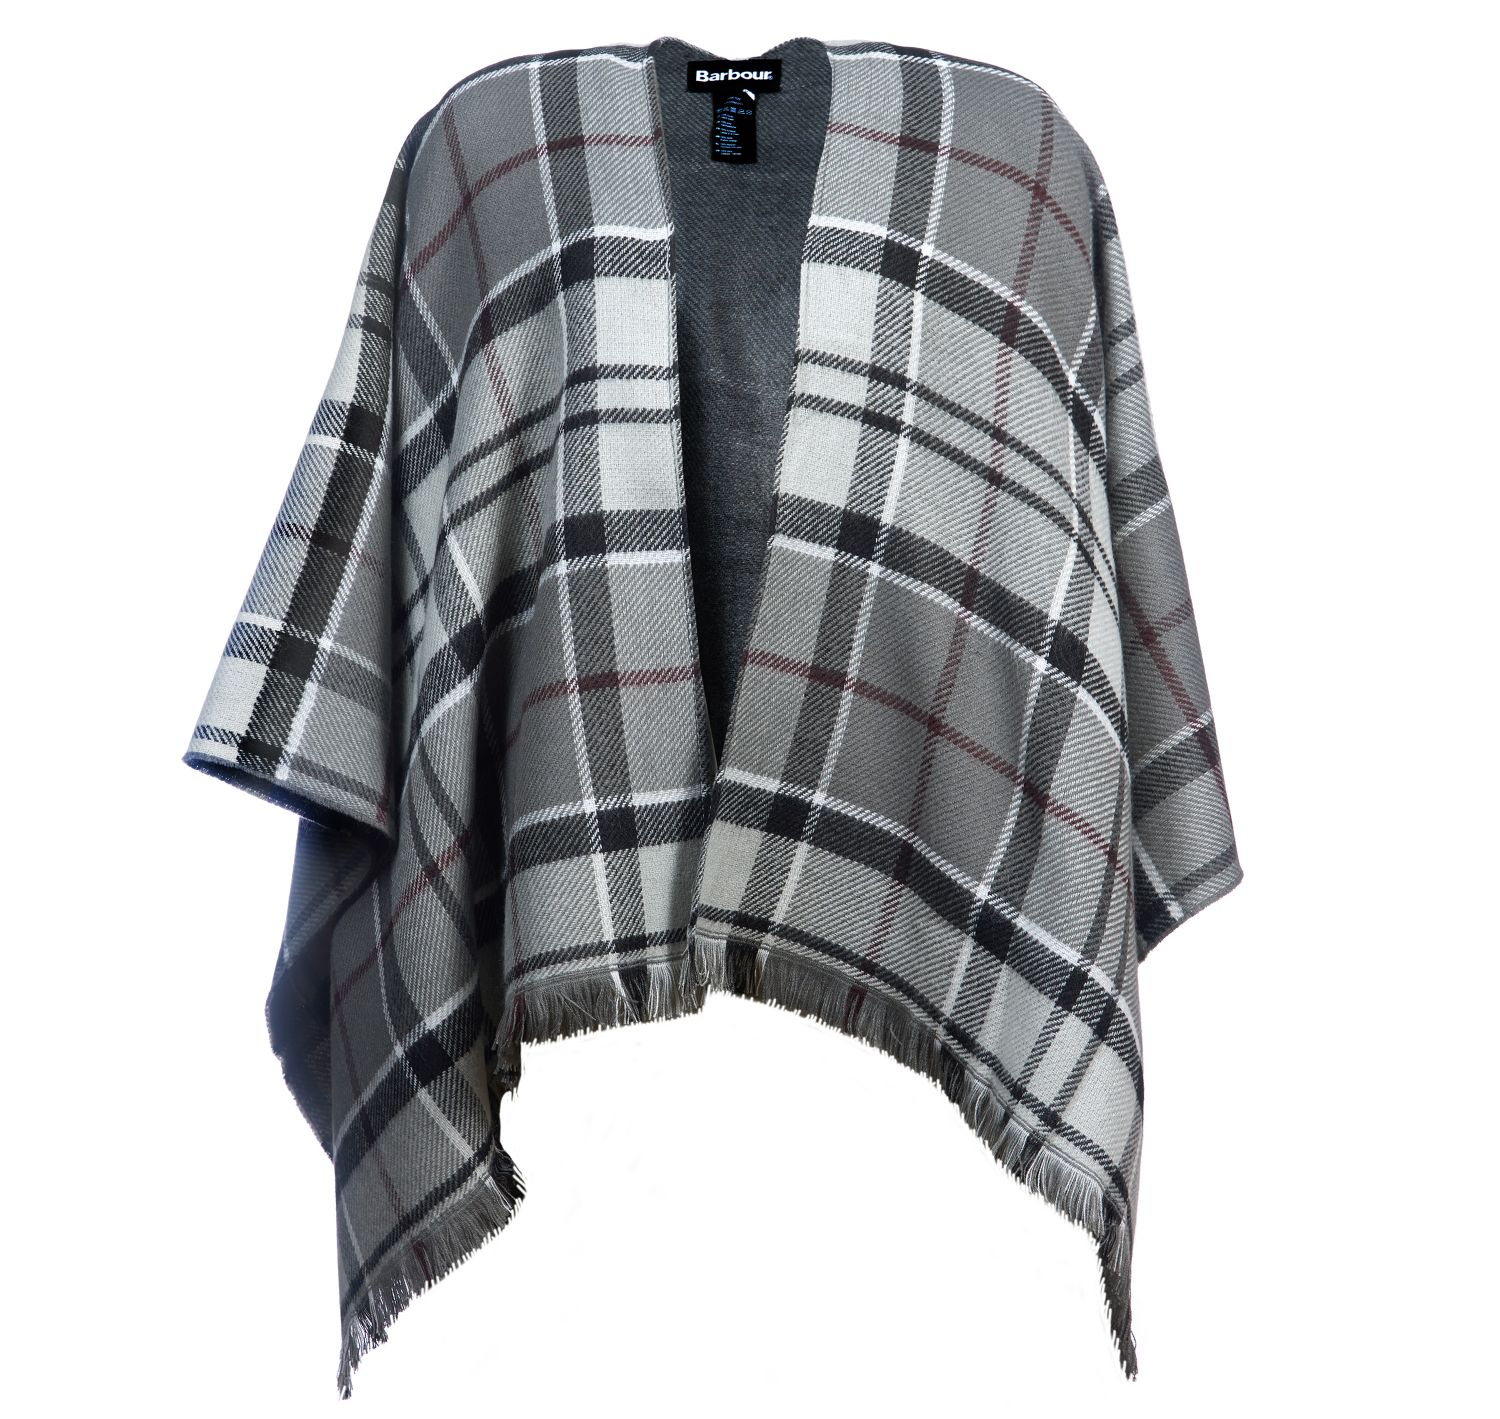 Barbour Barbour Lomand Tartan Wrap Barbour Lifestyle: from the Classic capsule